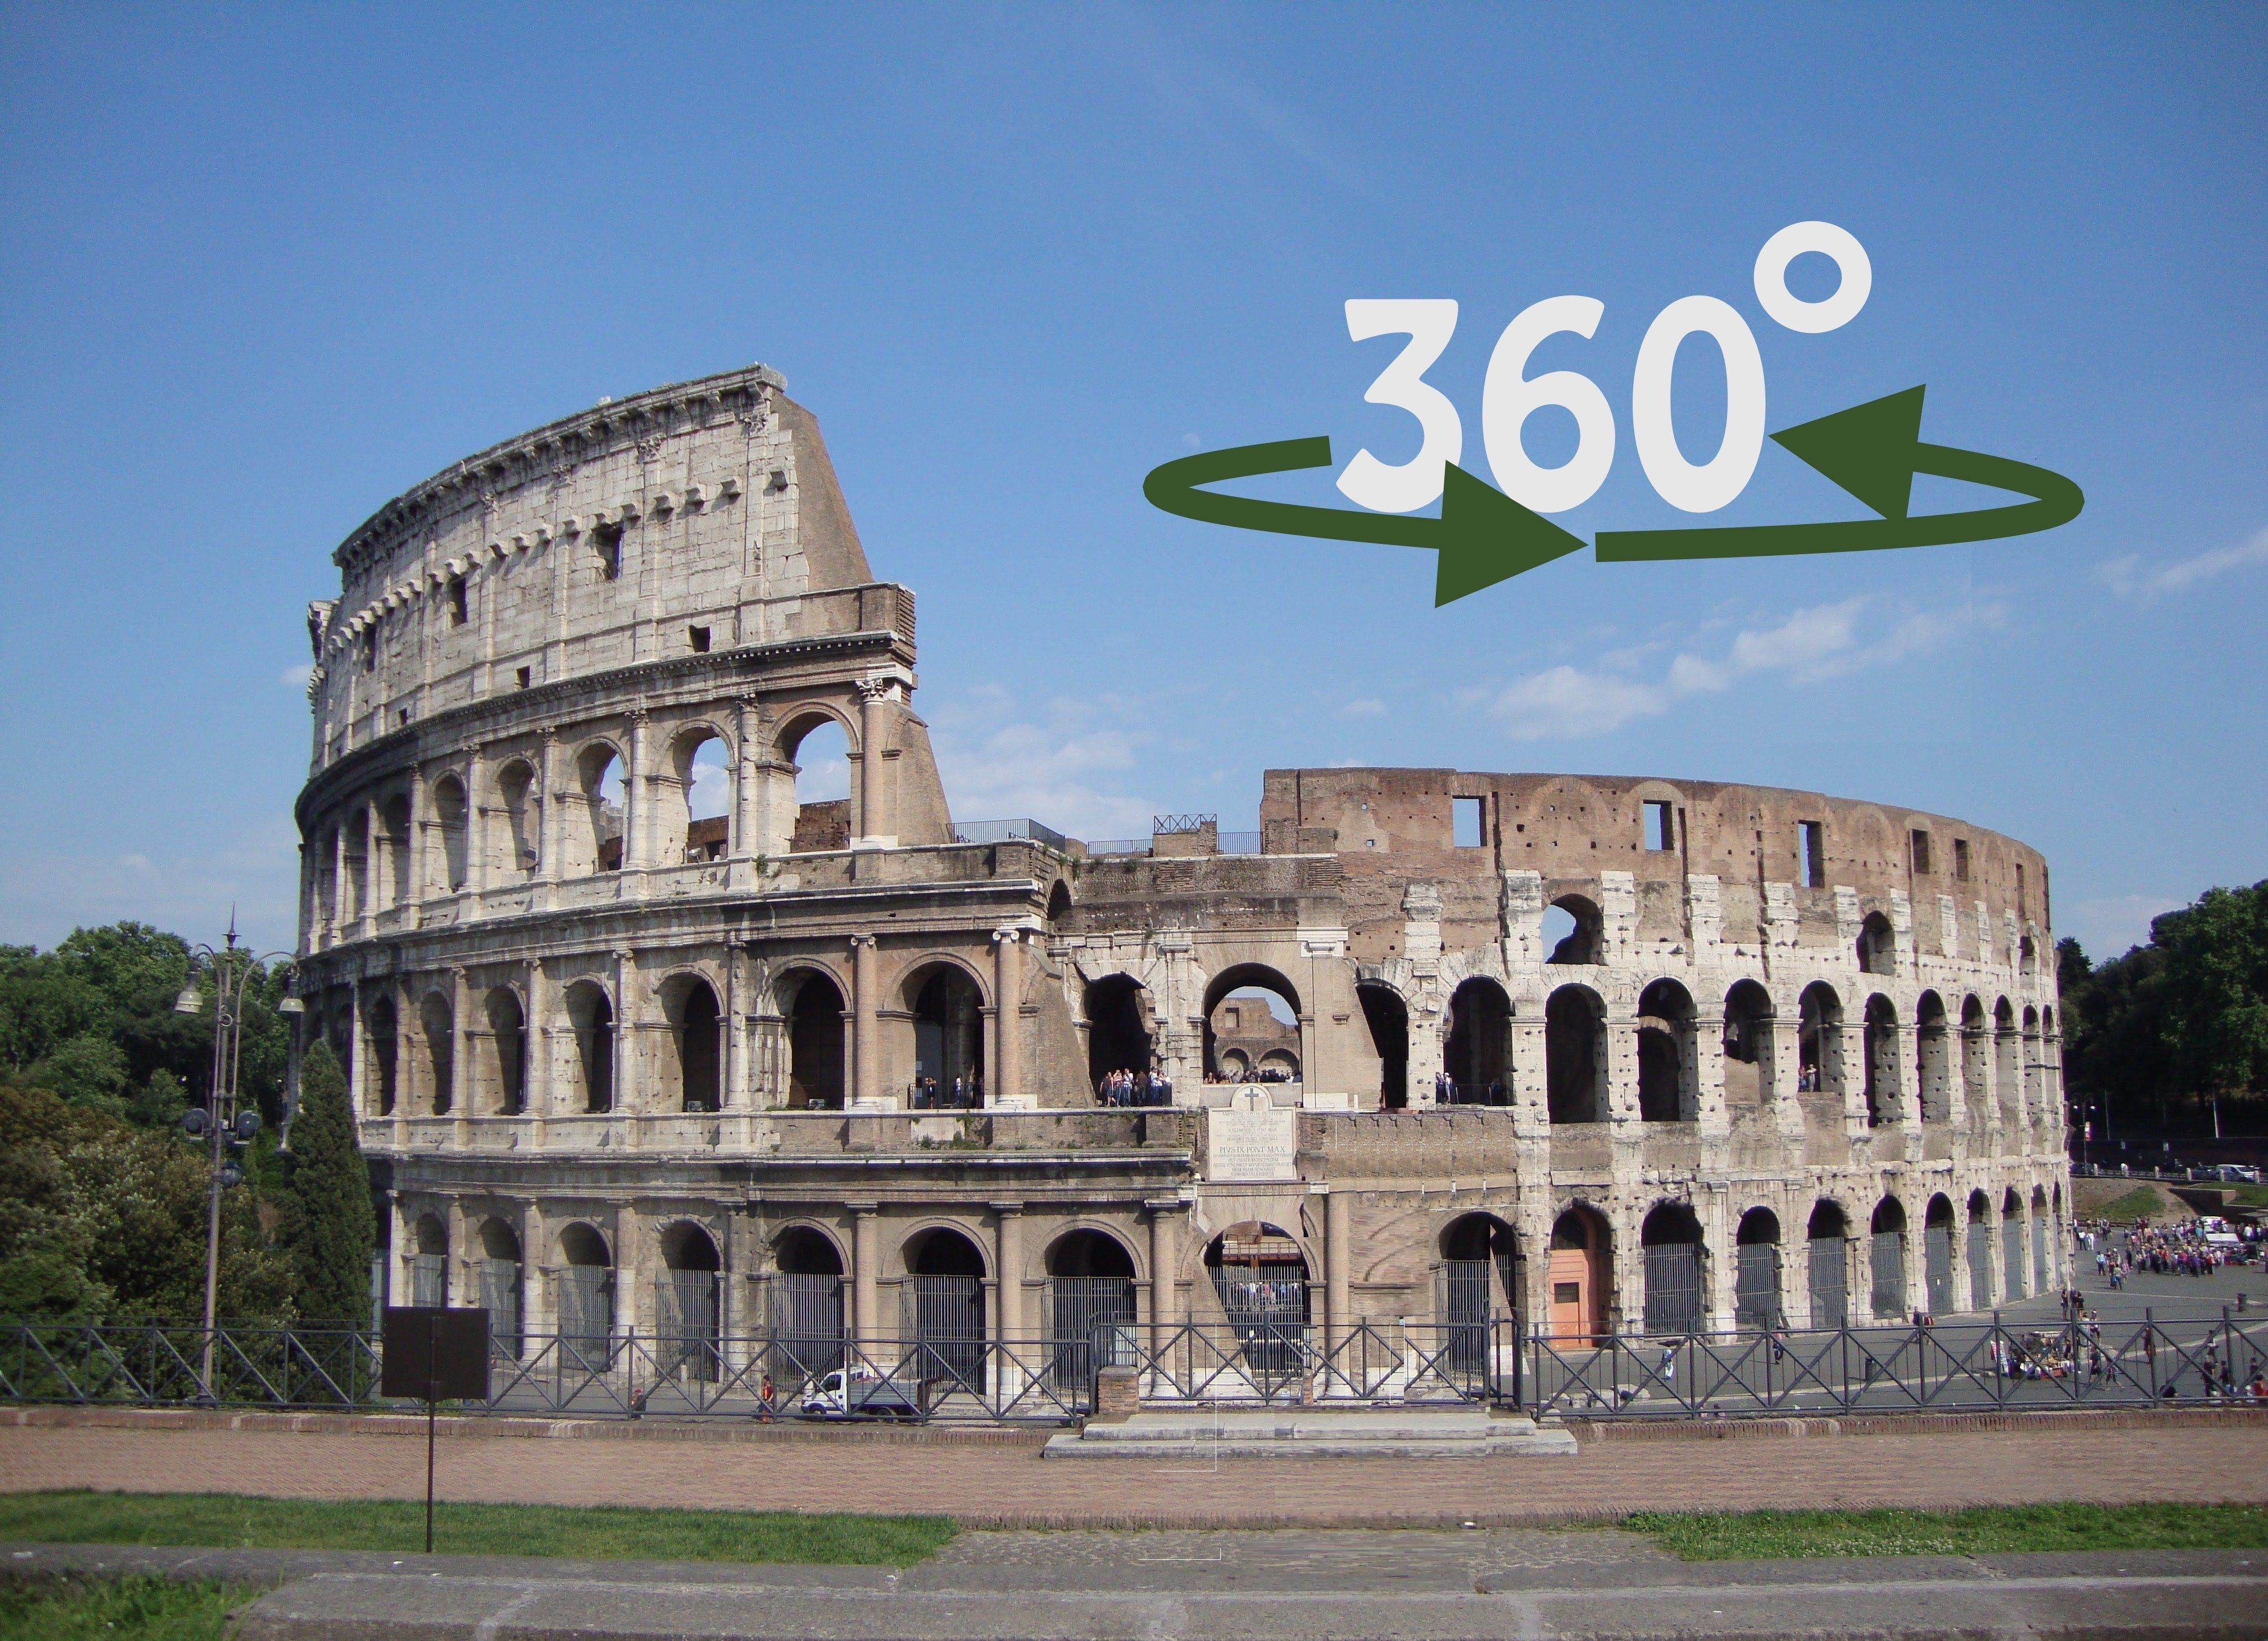 Some Videos And Pictures Of The Inside And Outside Of The Colosseum In Rome Italy Hope You Like It If You Just Want To See The Colosseum Rome Colosseum Rome